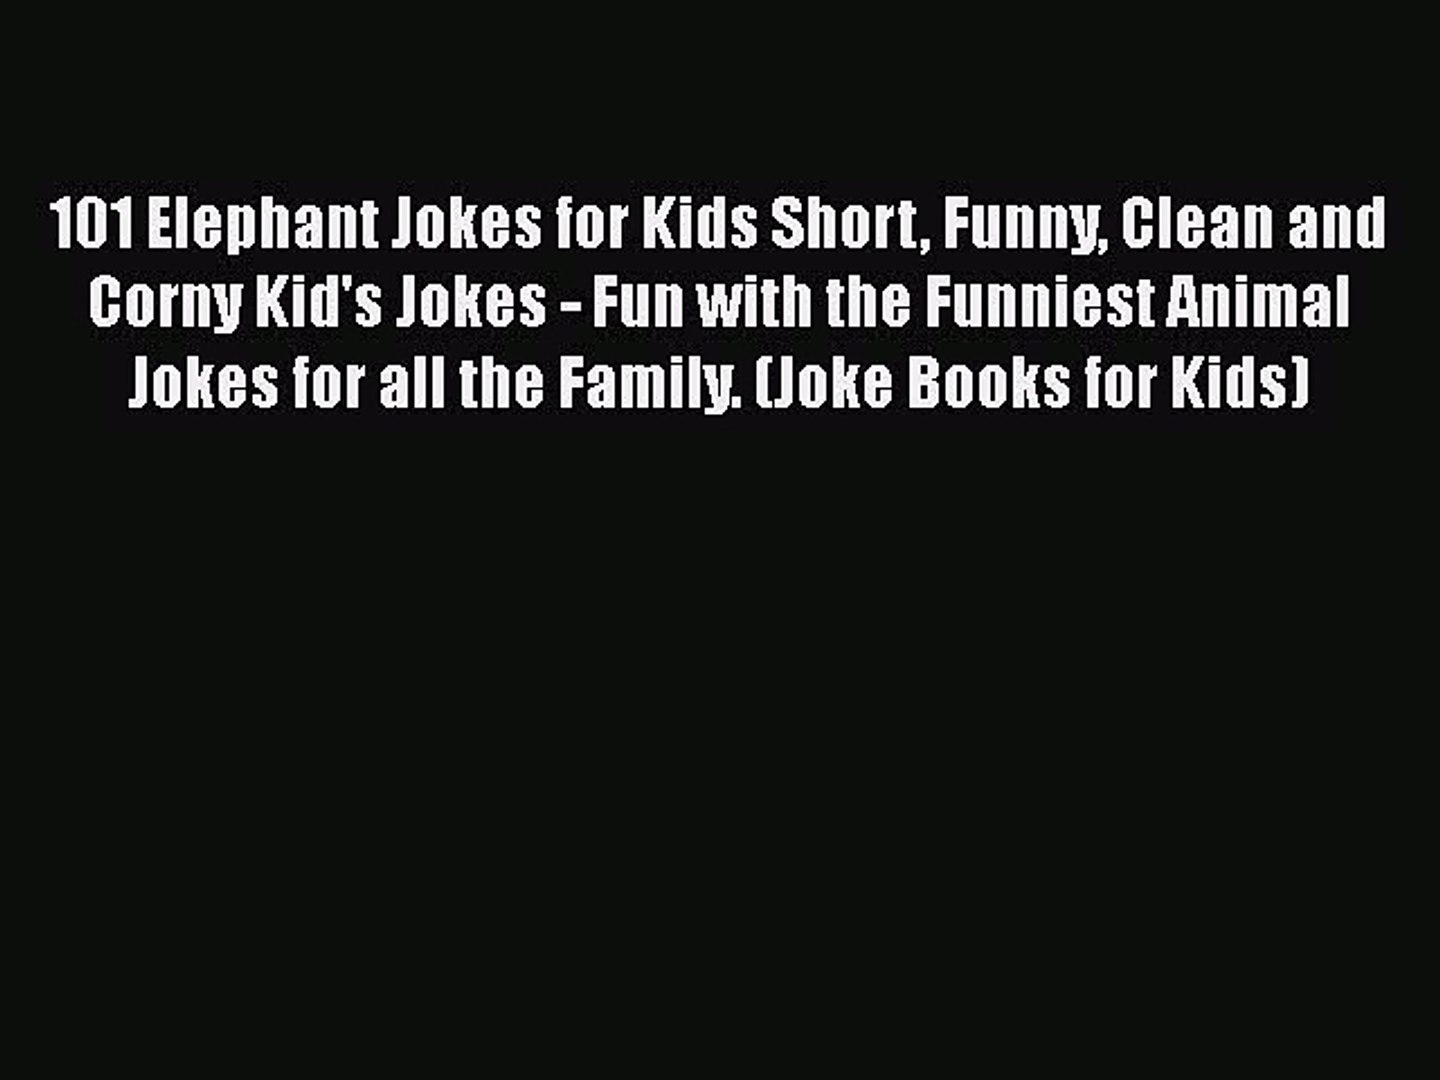 101 Elephant Jokes for Kids Short Funny Clean and Corny Kid's Jokes - Fun with the Funniest